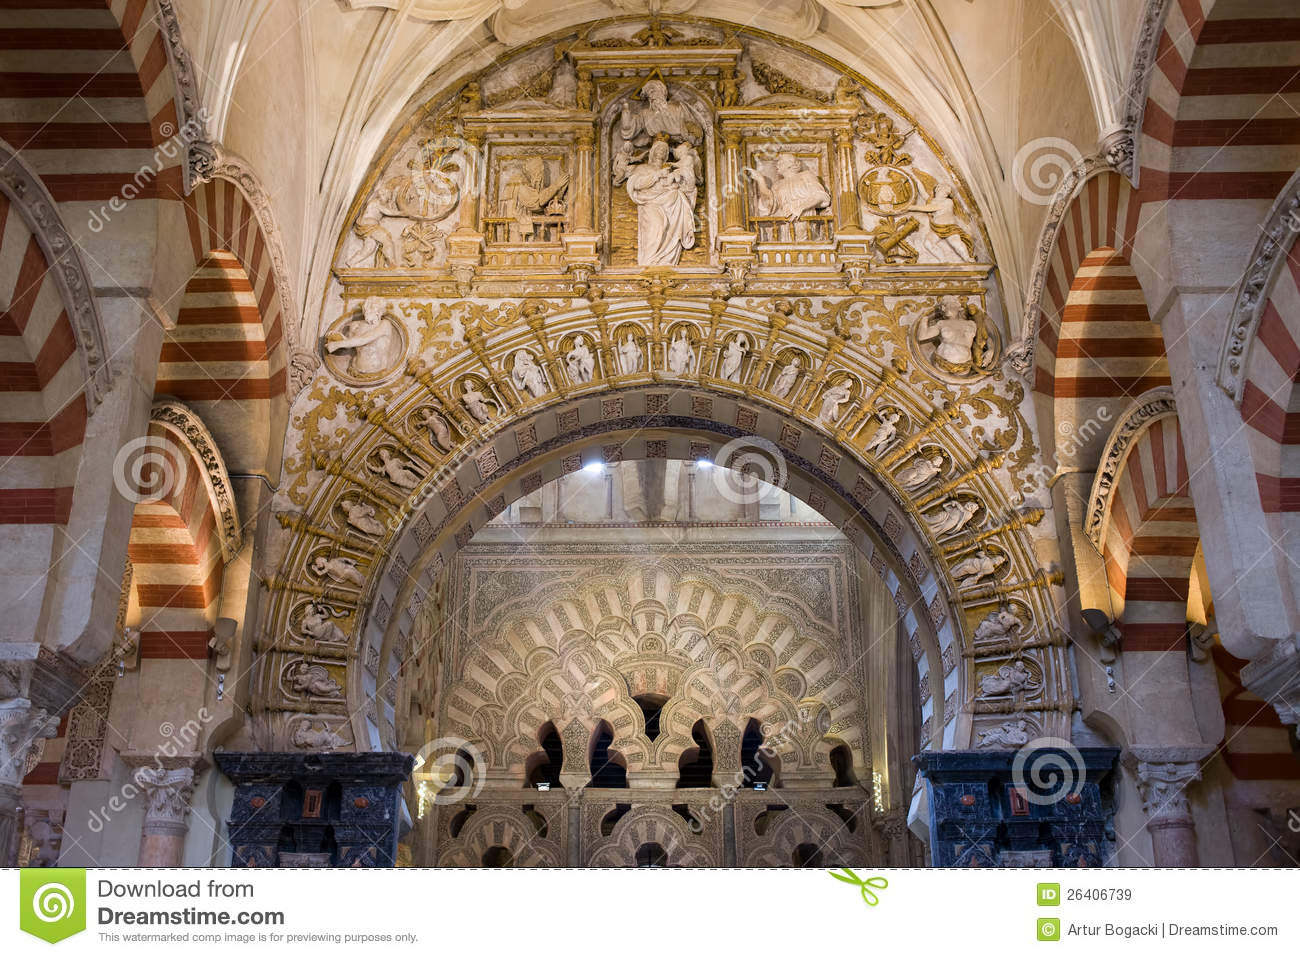 an analysis of the beautiful cathedrals 5 ชั่วโมงที่แล้ว charles gurrey's painstaking work adorns churches and cathedrals across yorkshire and beyond julian cole went to see the sculptor.